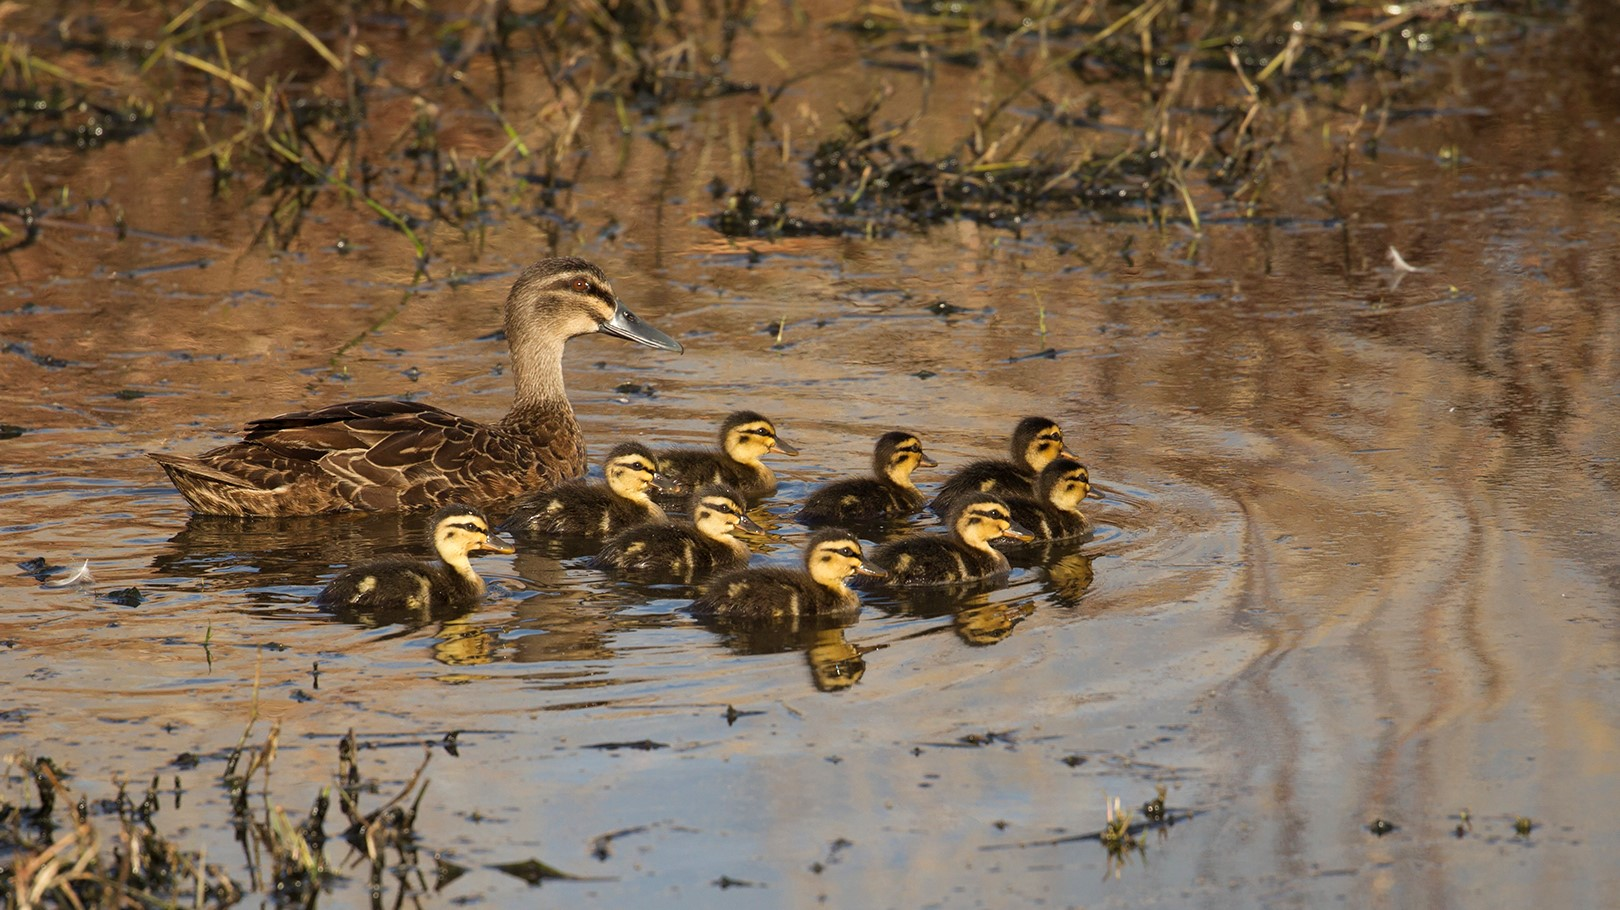 Its been great weather for ducks Photo Jeanette Nee